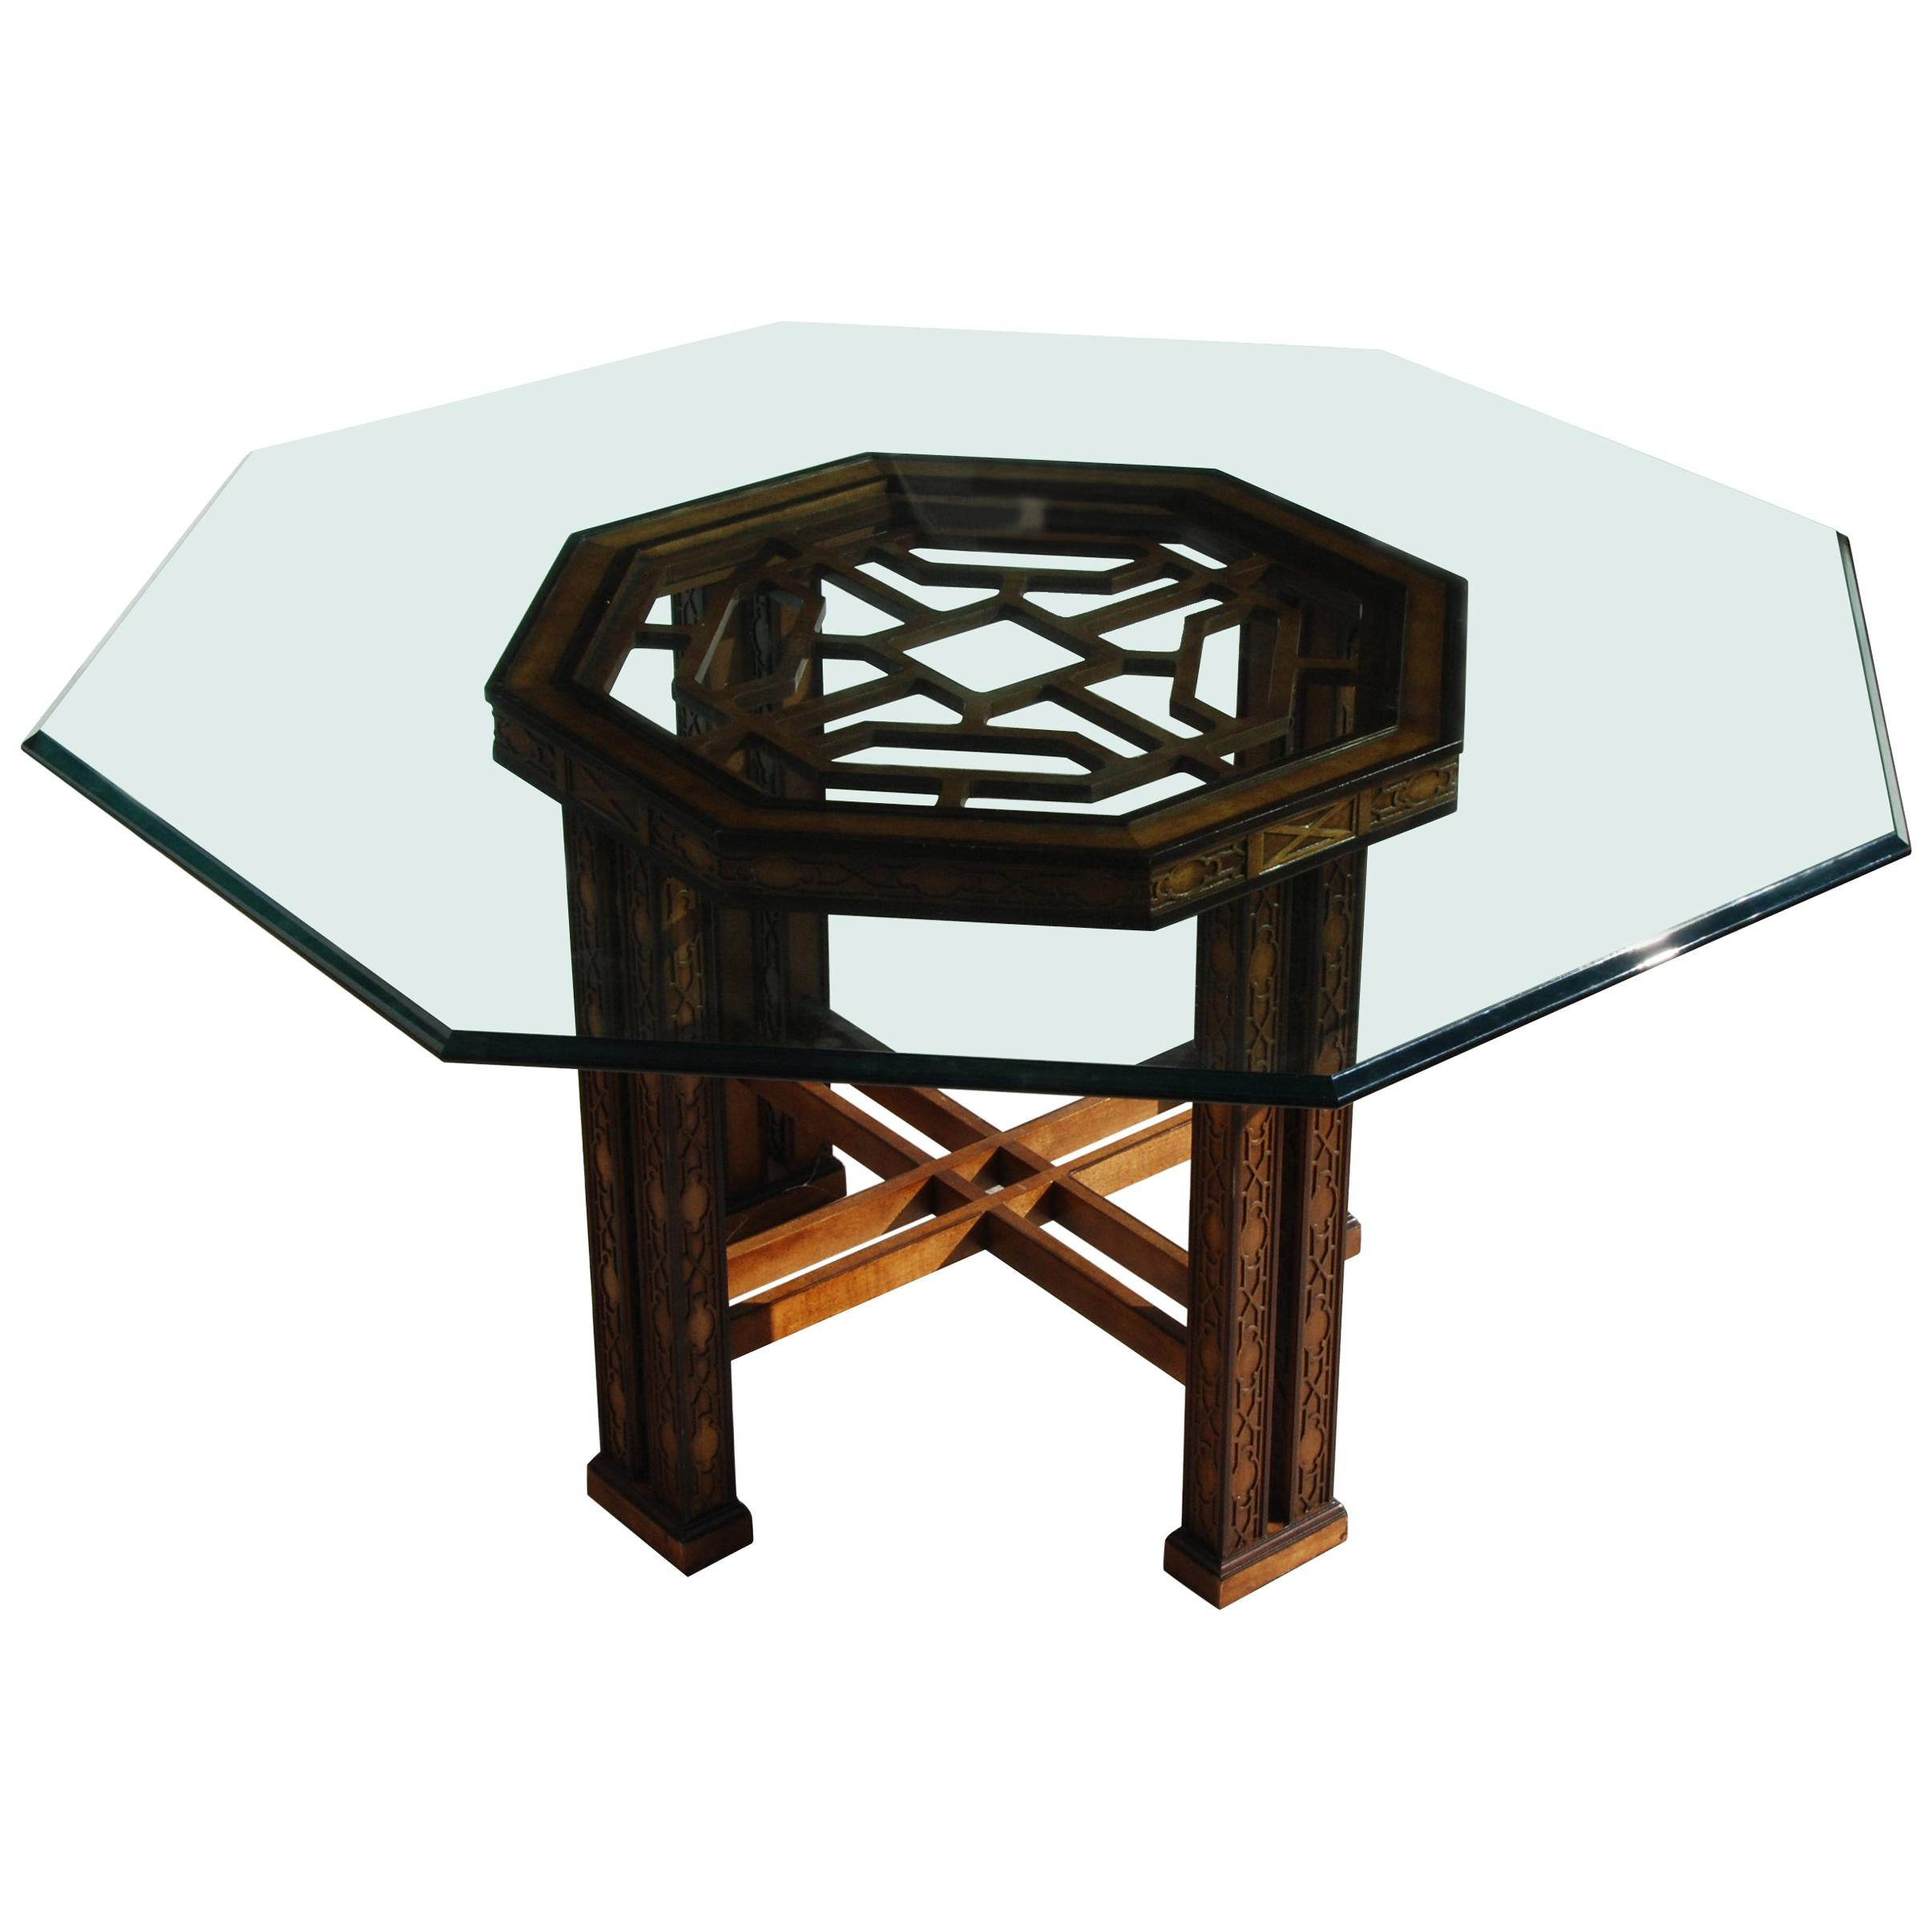 Drexel Heritage 5ft Diameter Intricate Carved Wood Chinoiserie Dining Table